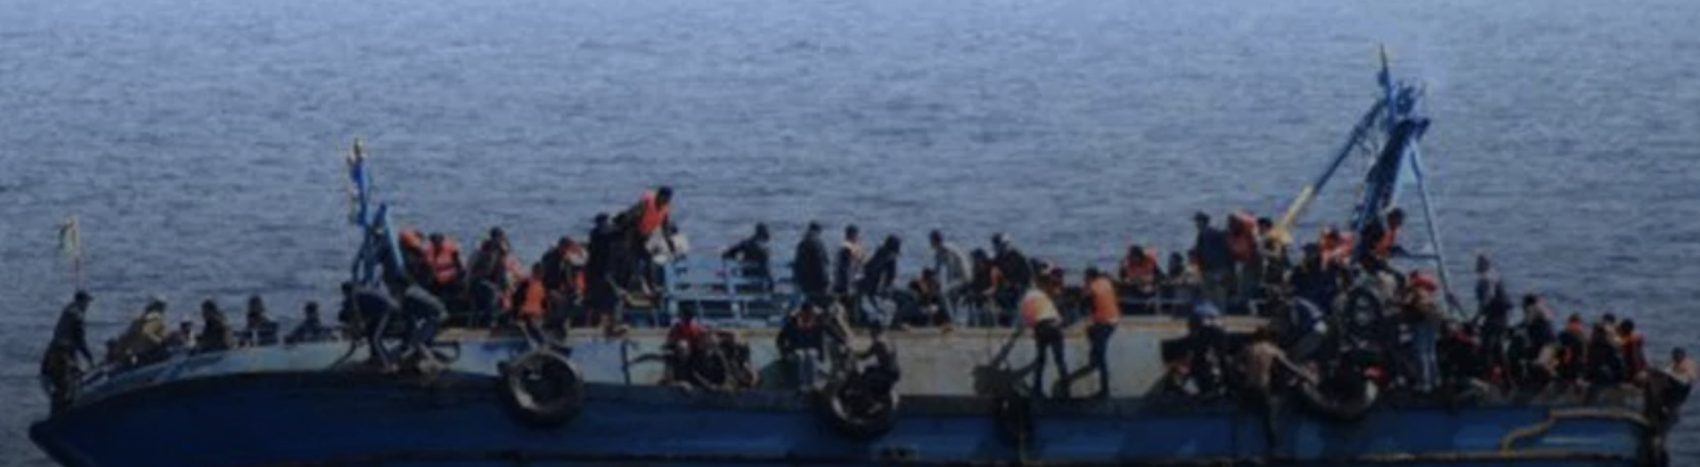 Migrants trying to cross from Tunisia to Europe